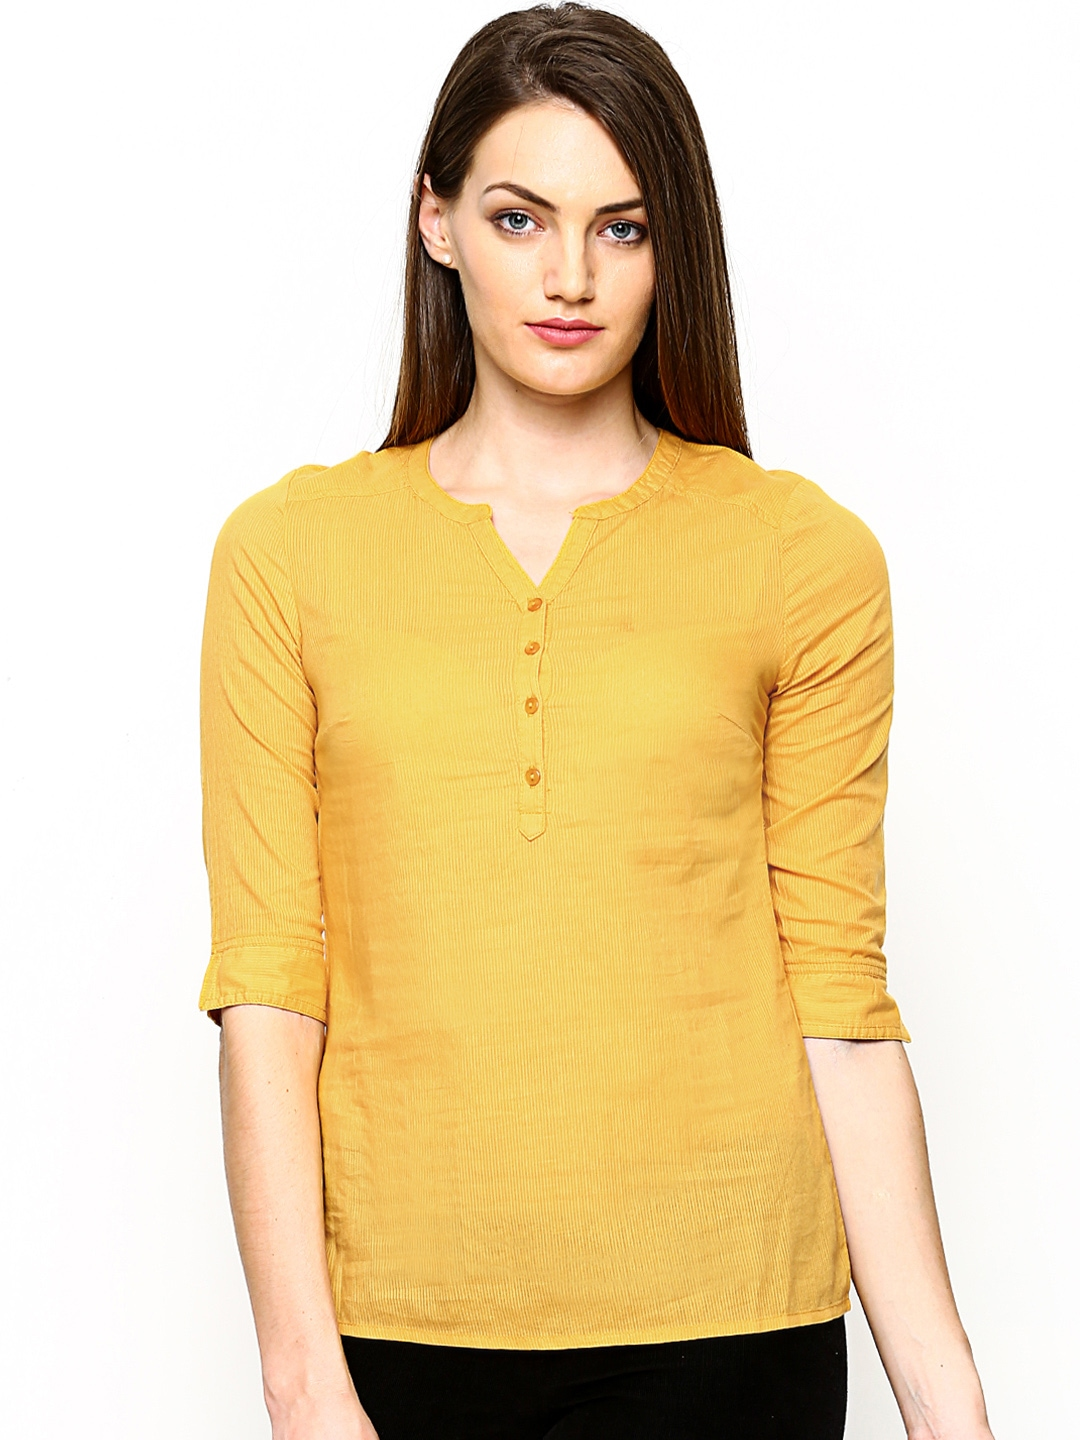 Only women mustard yellow top 500559 buy myntra only tops at best